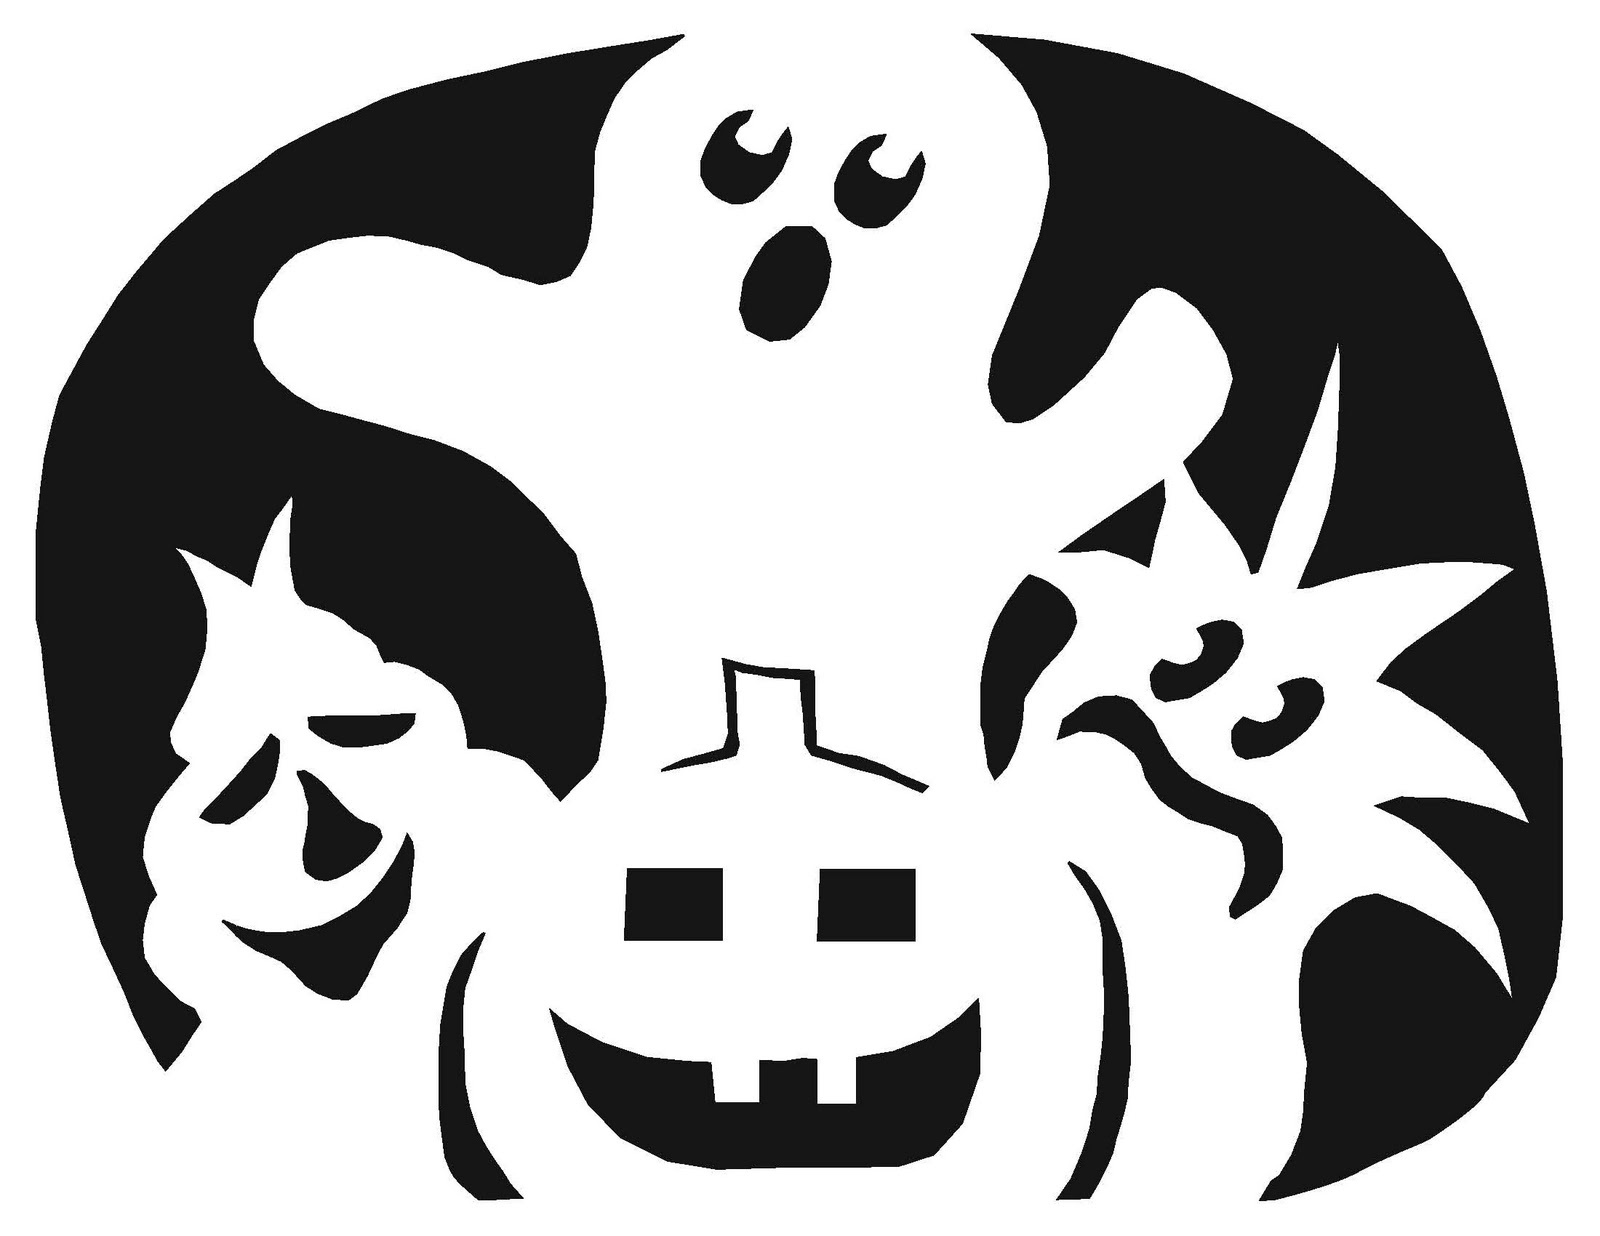 Free Printable Ghost Faces, Download Free Clip Art, Free Clip Art On - Free Printable Stencils For Face Painting